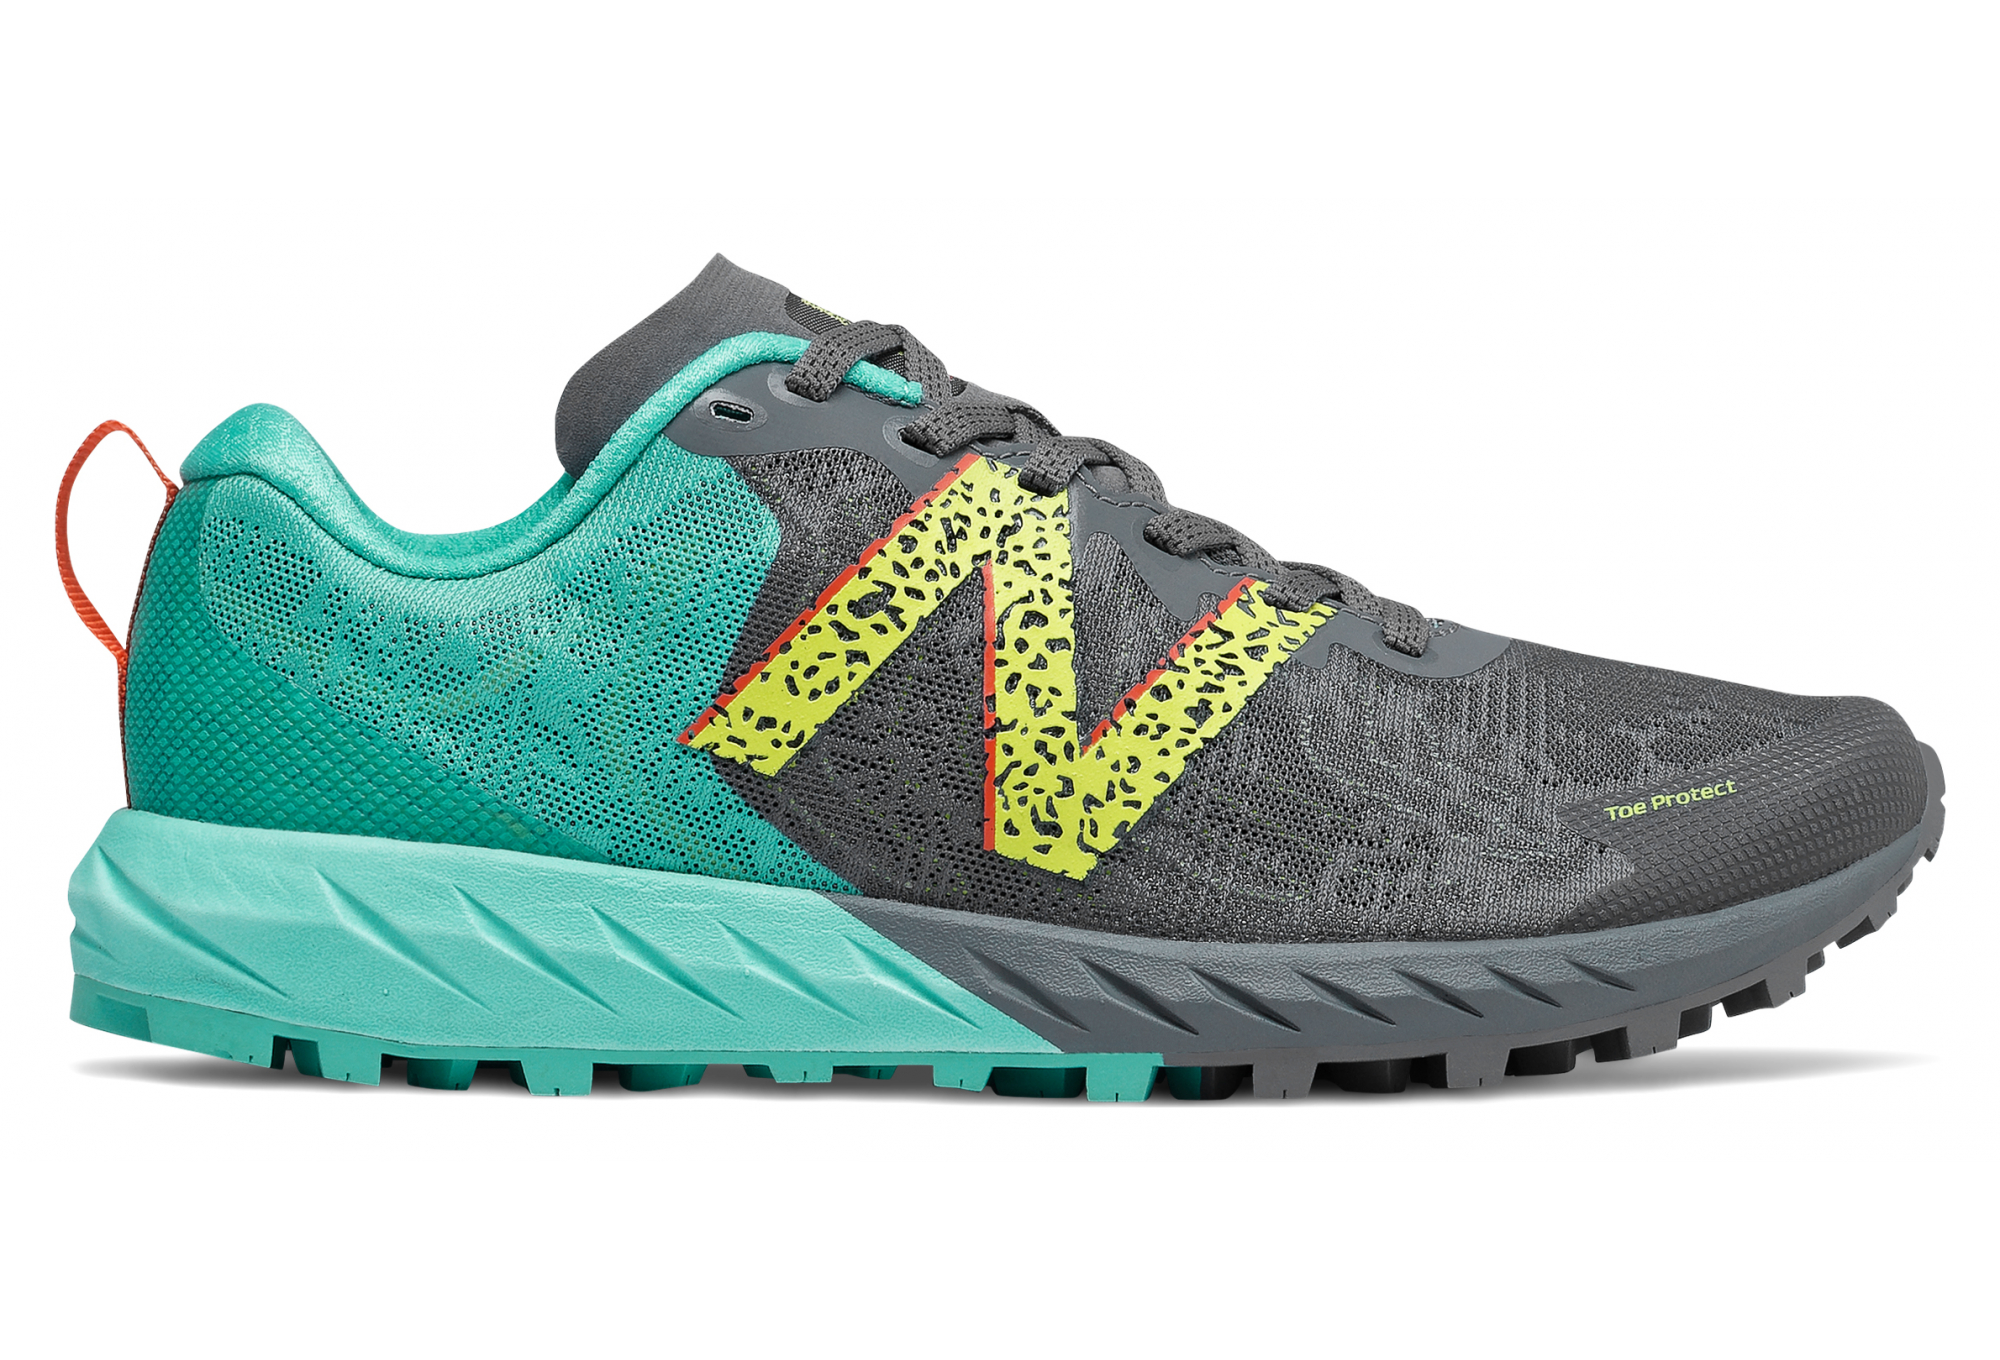 New Balance Summit Unknown V2 Trail Shoes Gray Green Woman